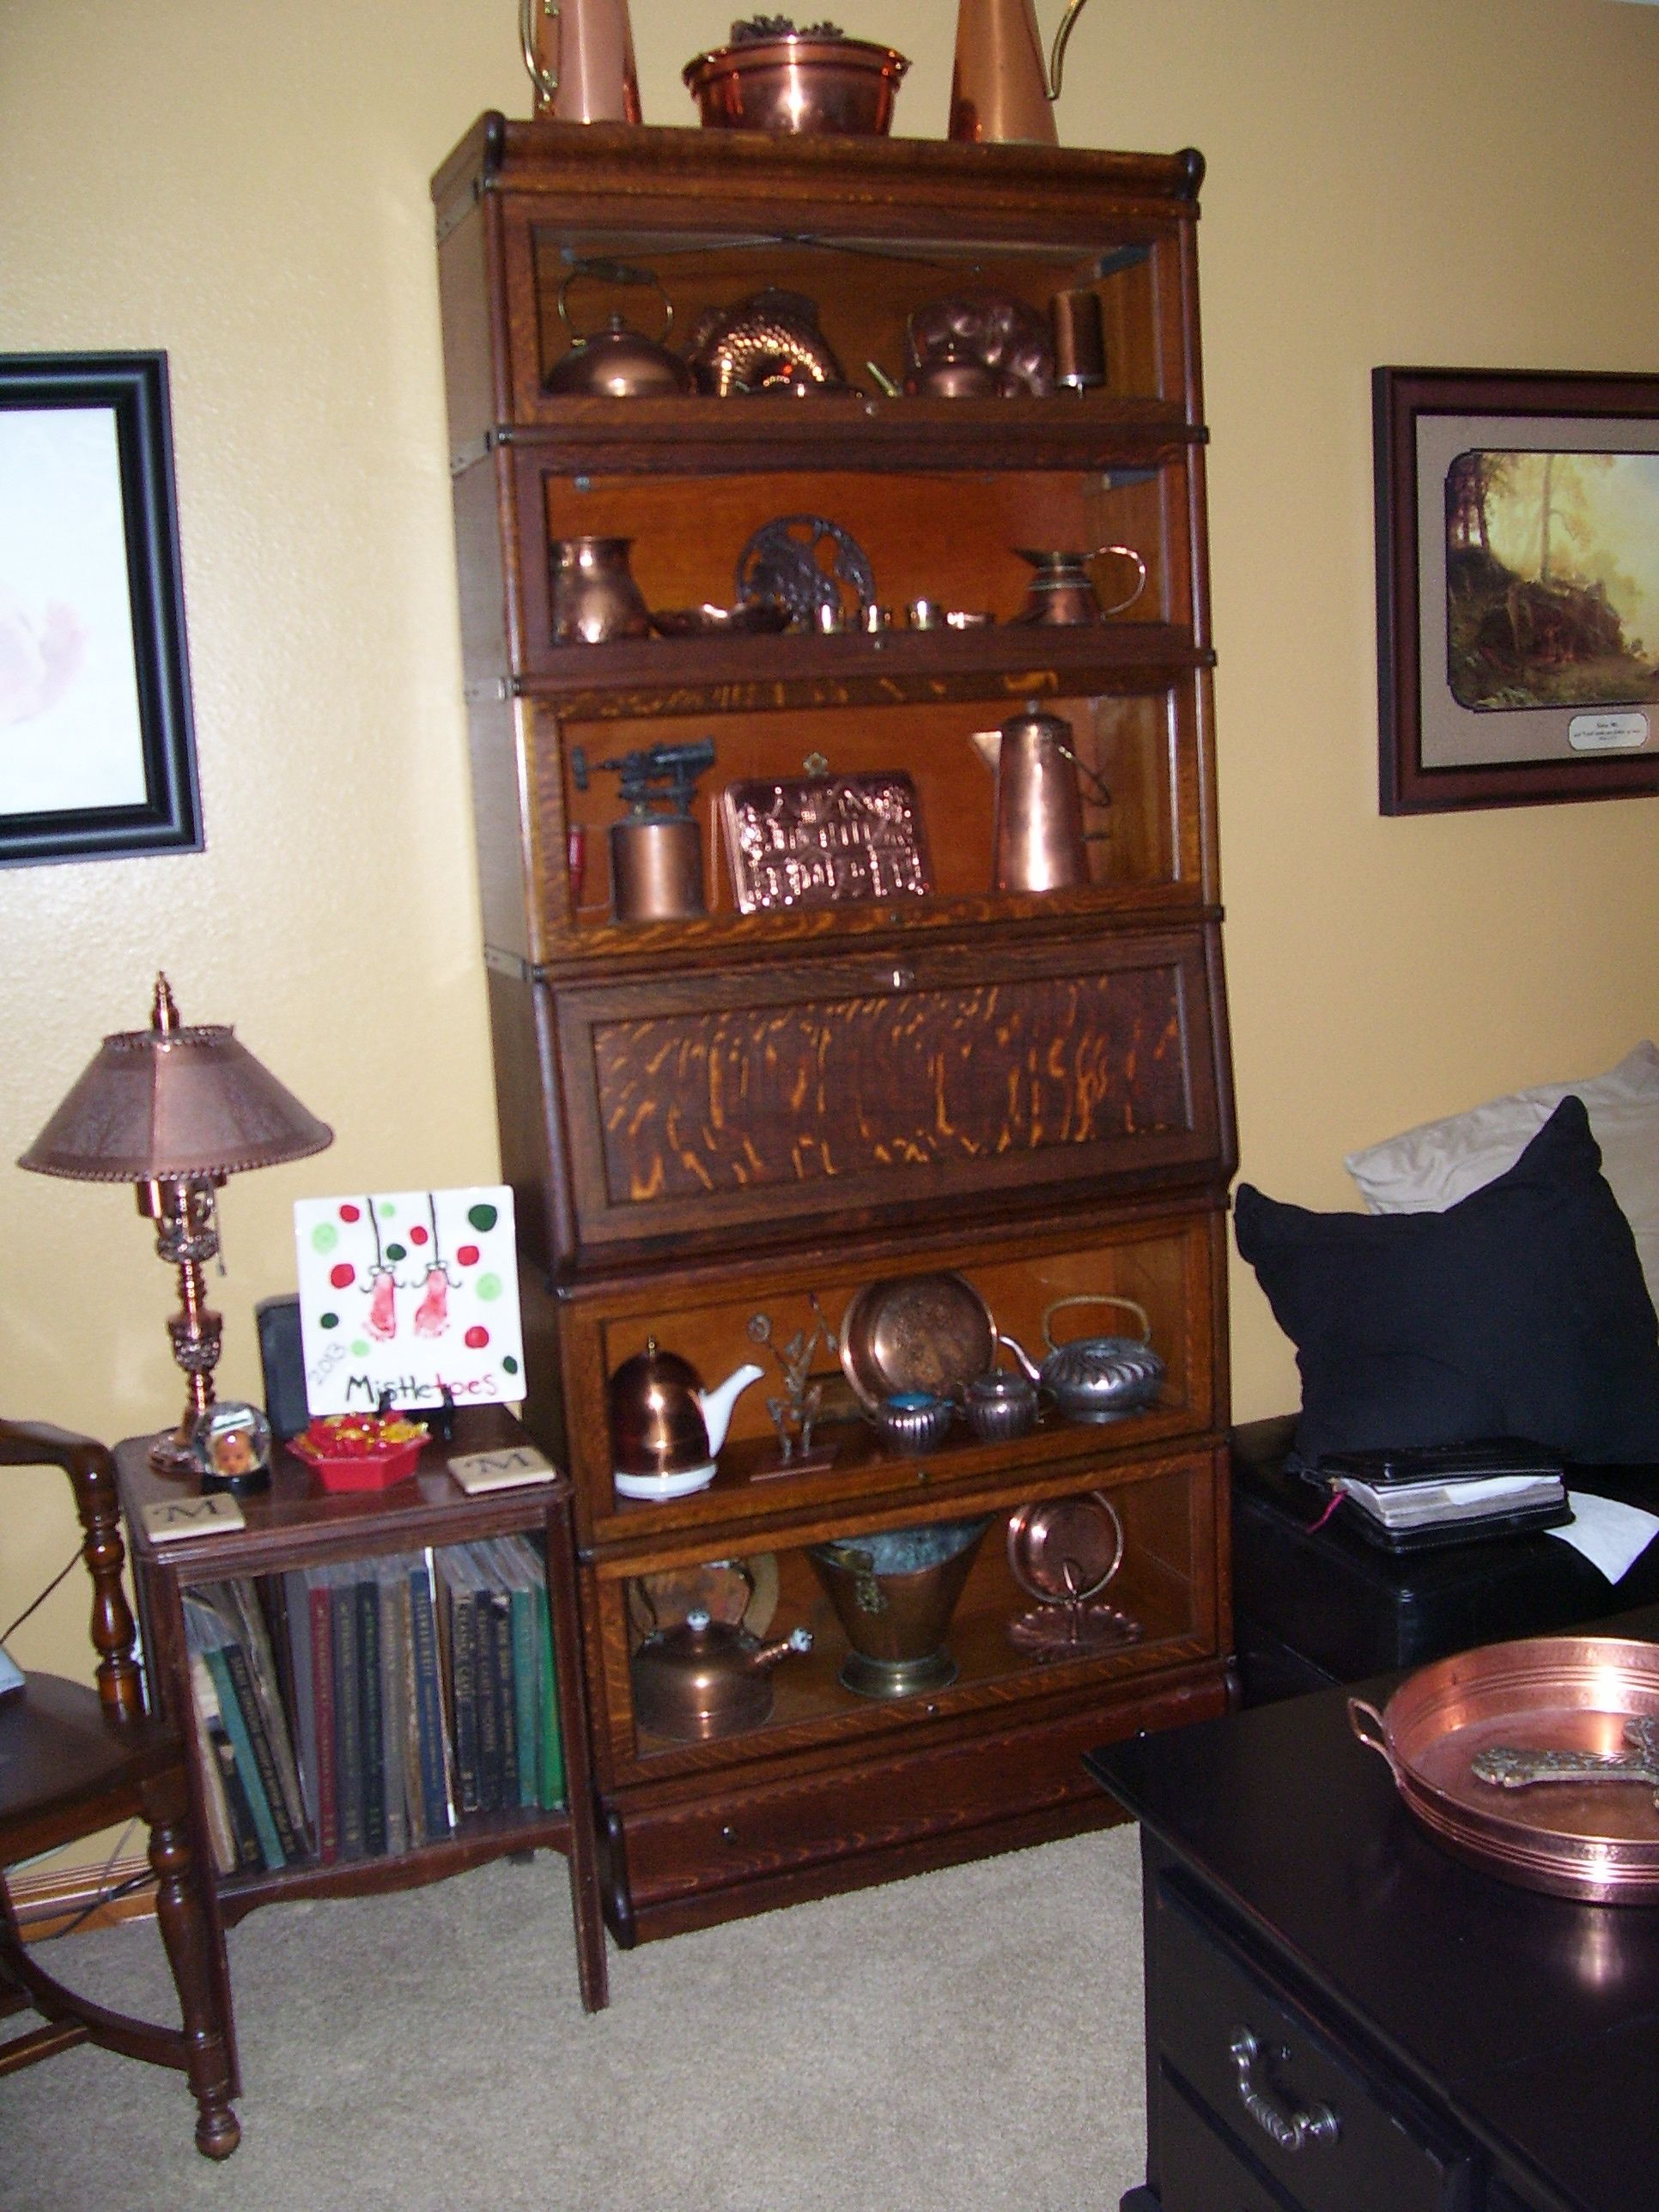 antique barrister bookcase made by globe wernicke with 5 bookcases and a standing desk in quartersawn